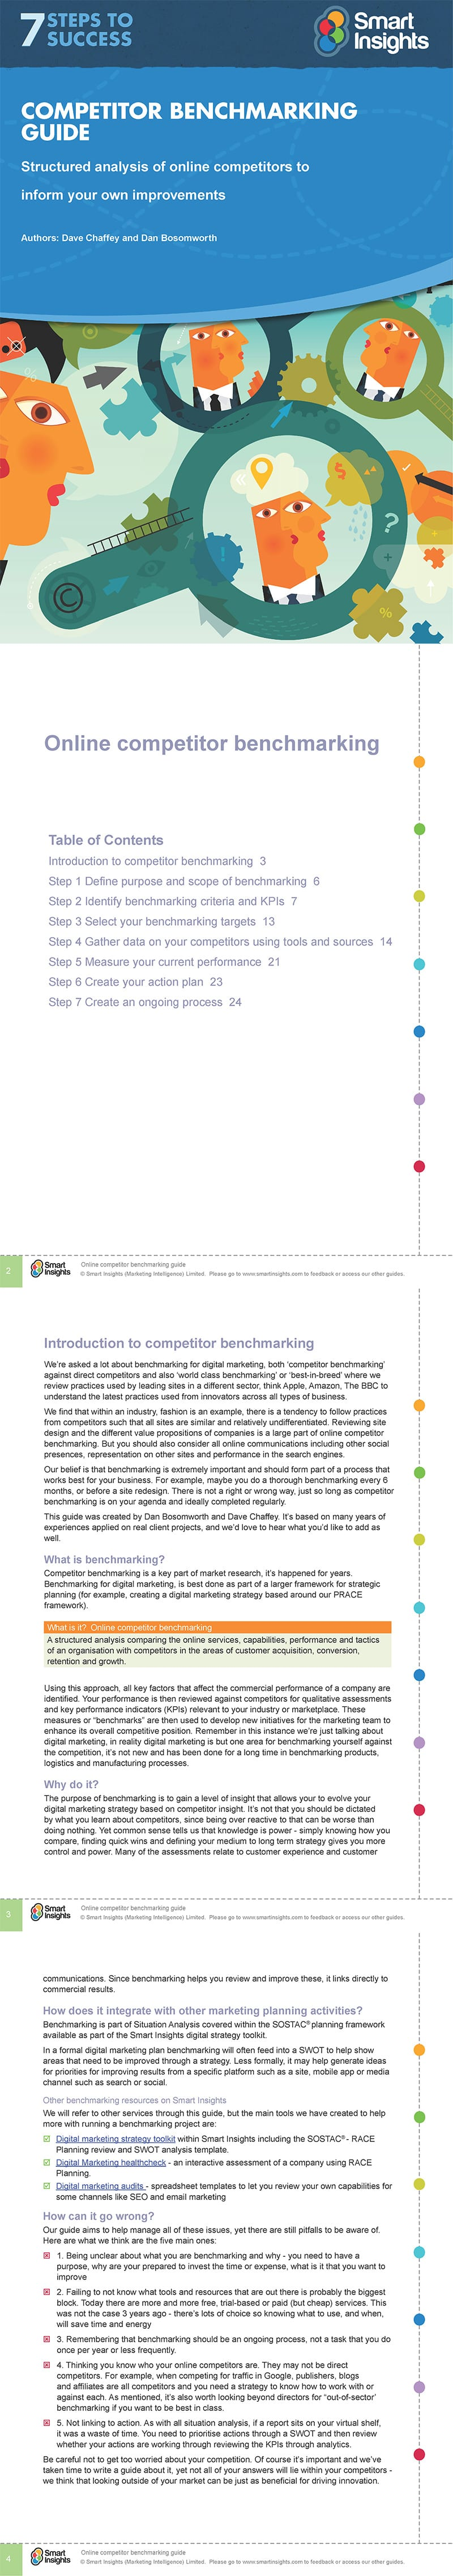 Competitor benchmarking guide